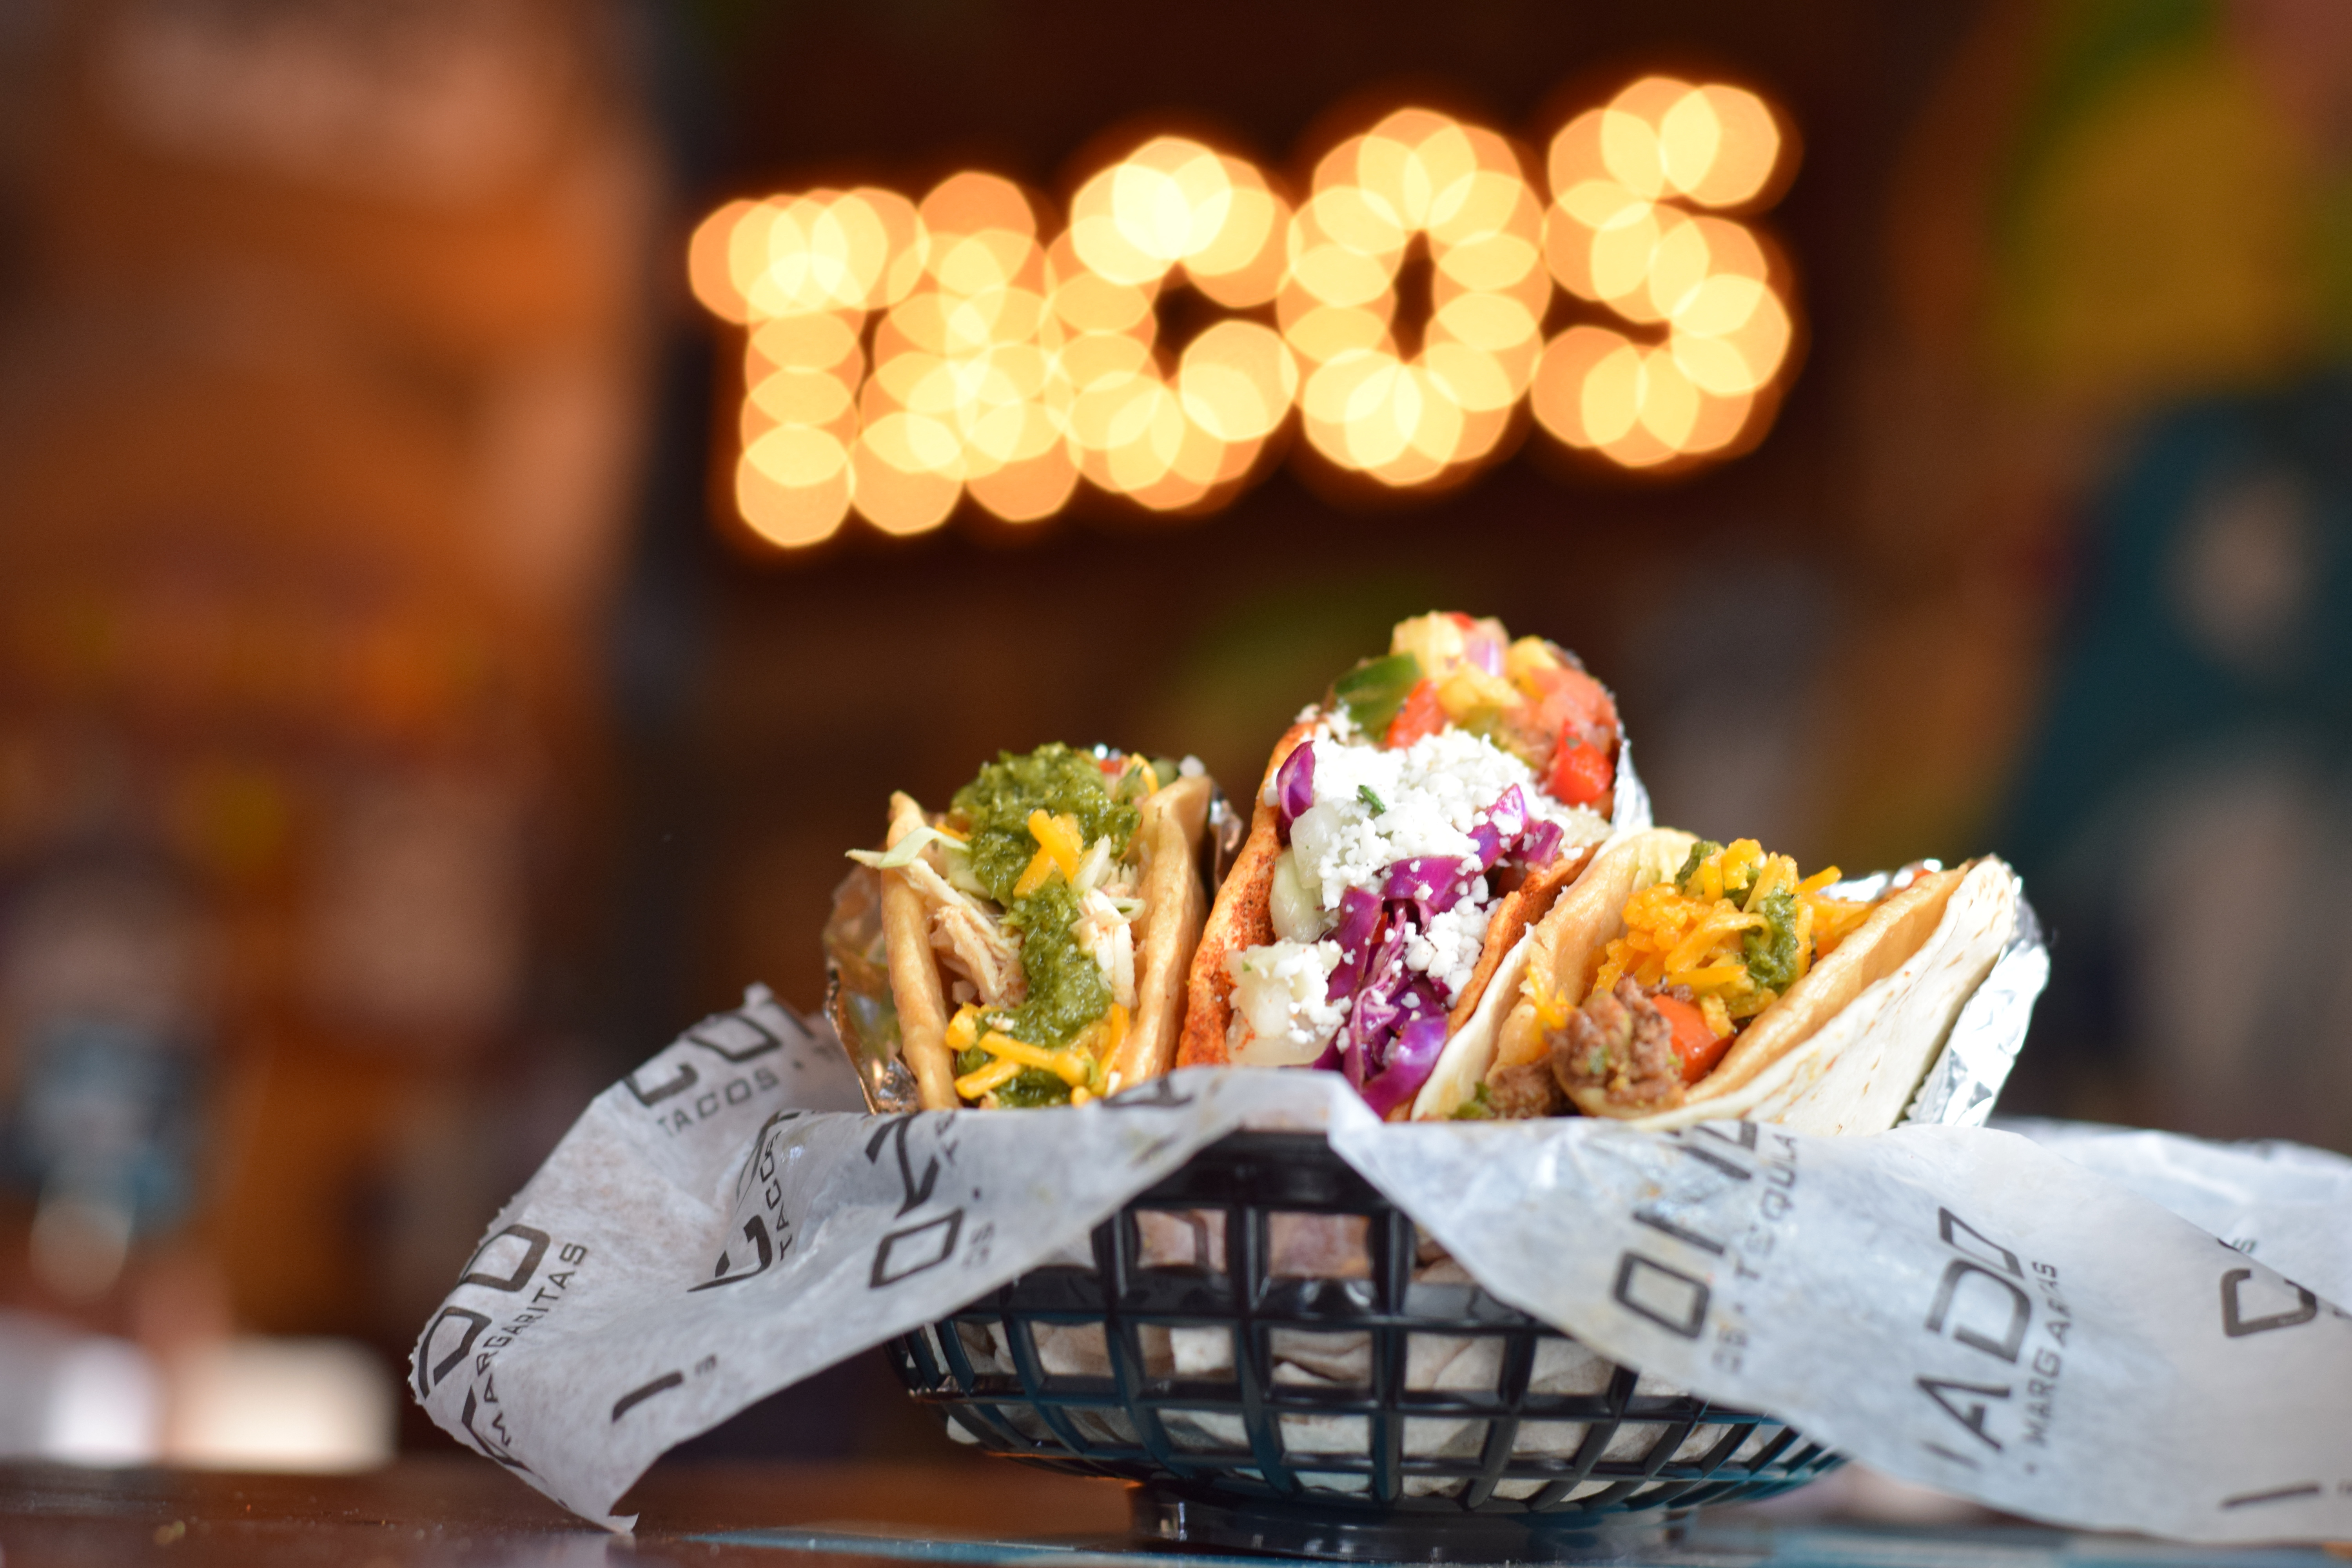 """Three tacos in a black plastic basket lined with paper and a lighted up sign reading """"Tacos"""" in the background."""